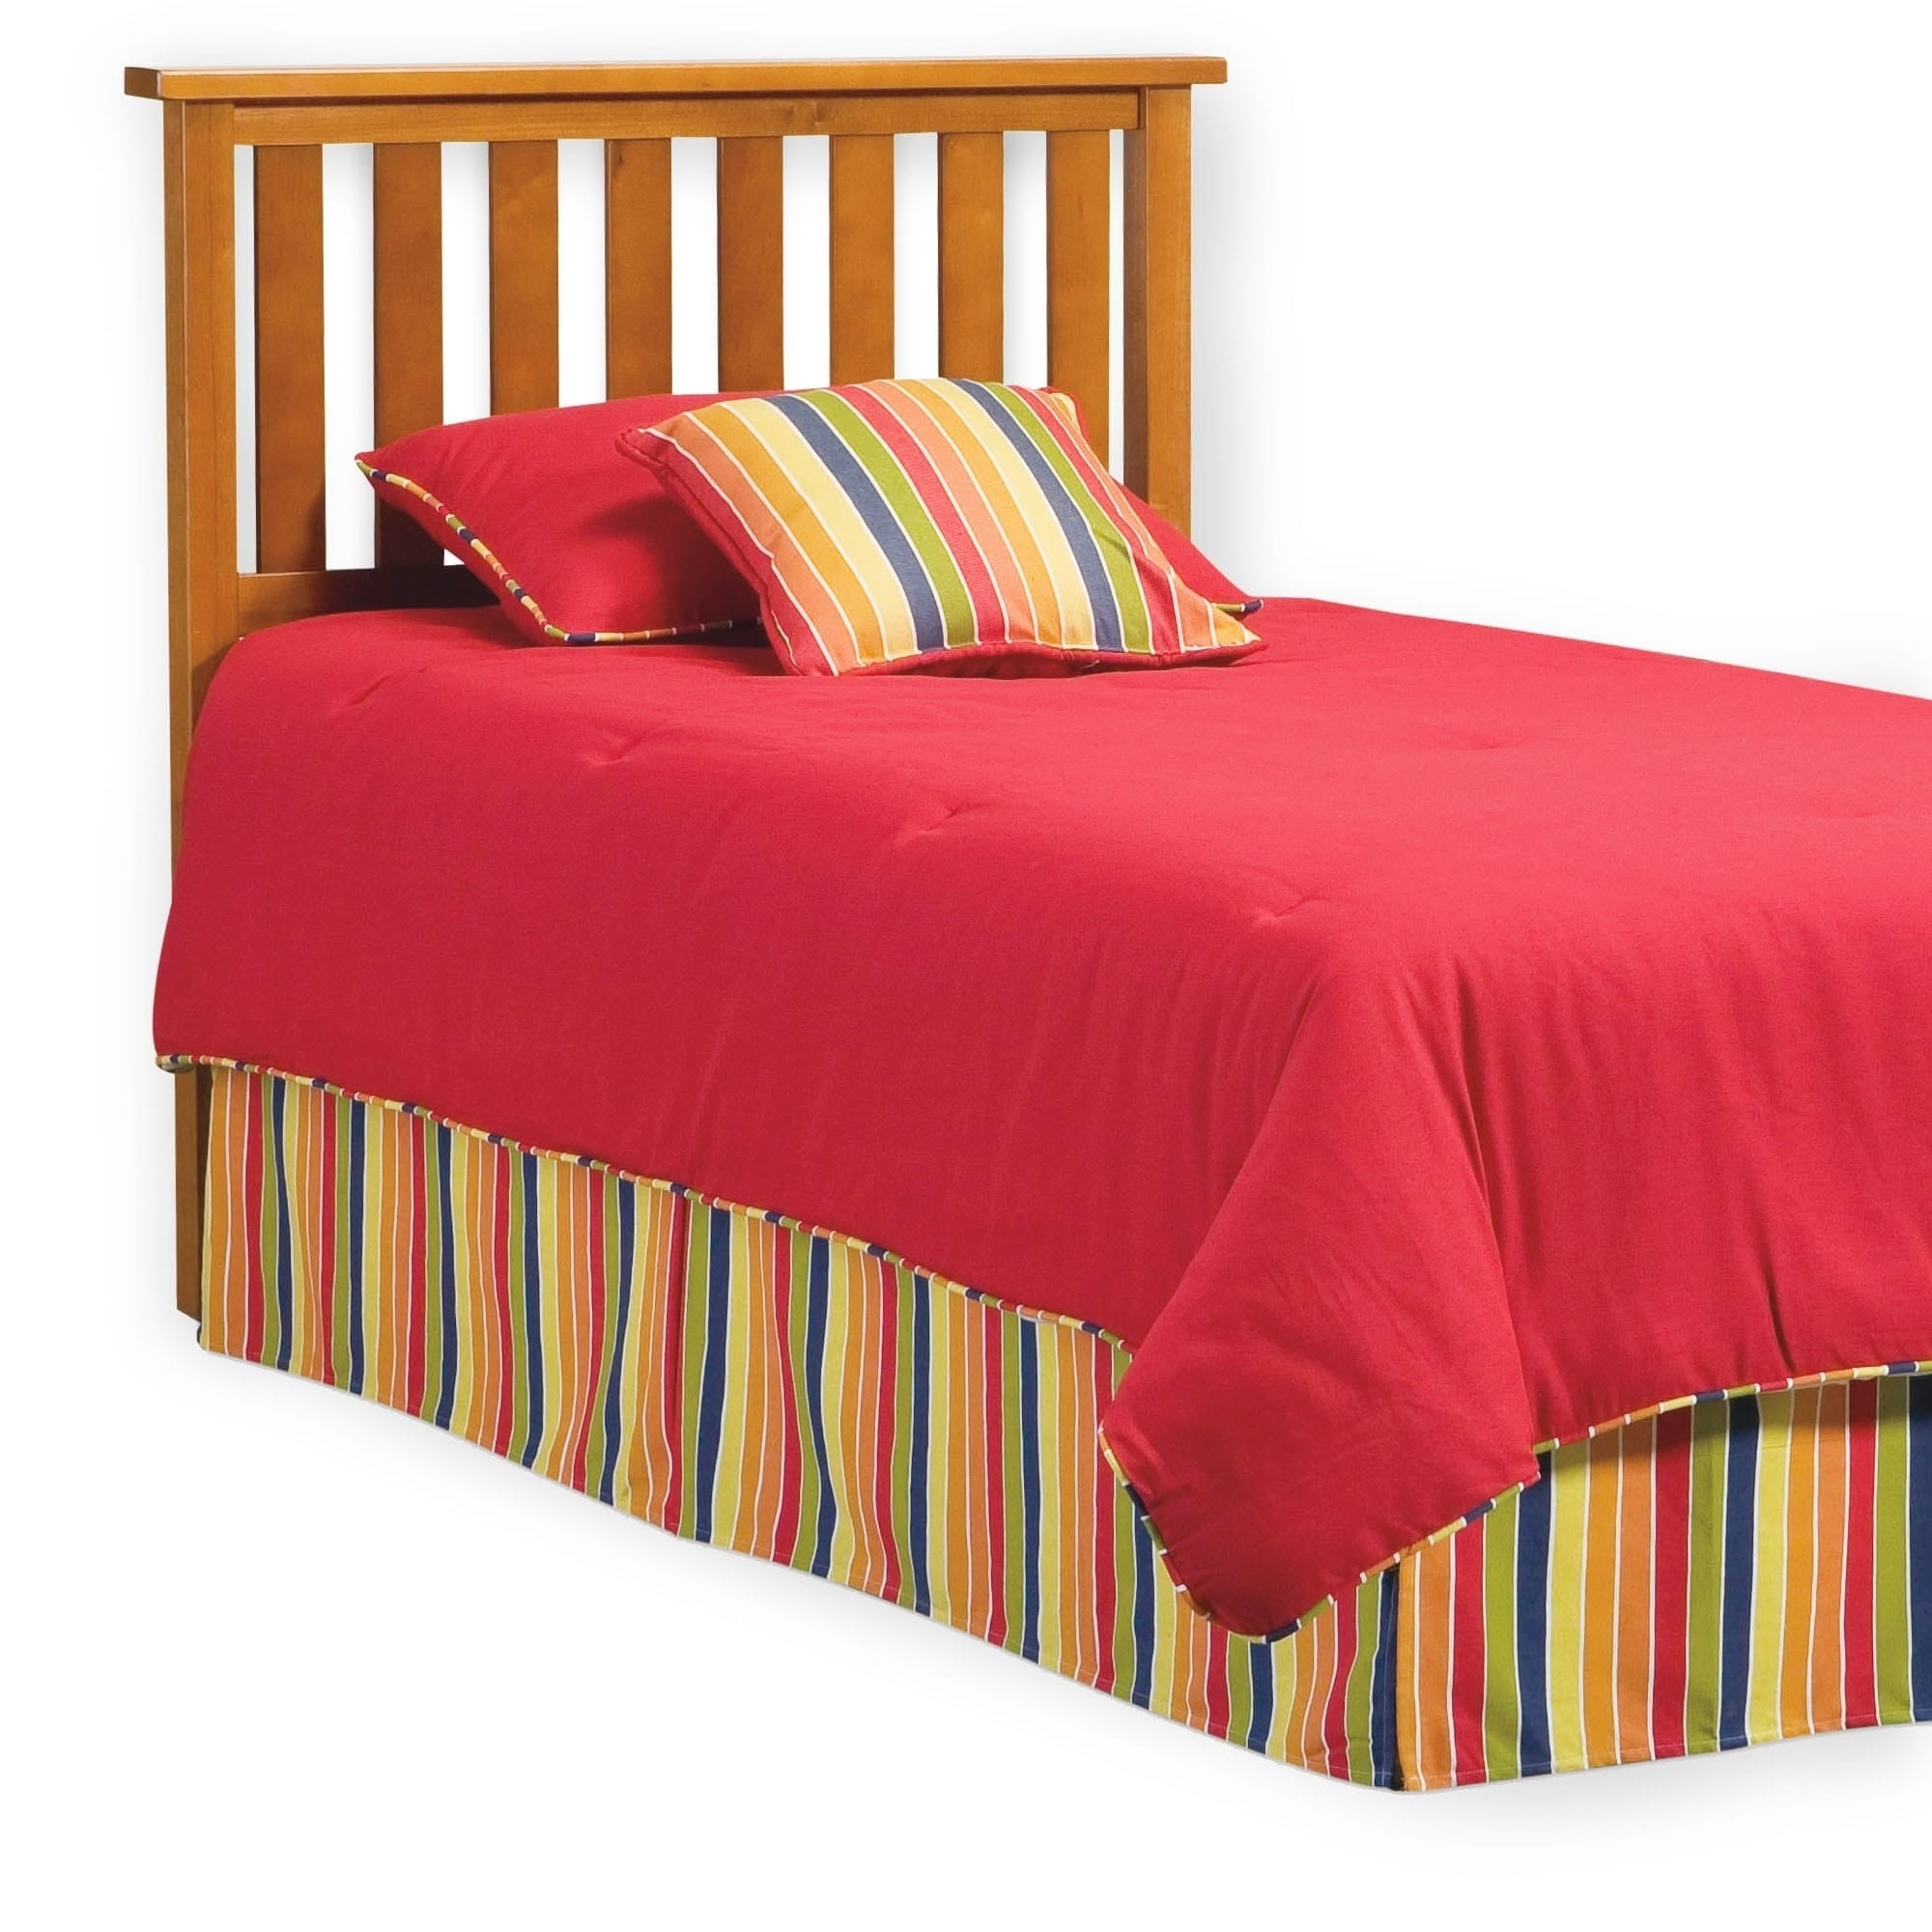 queen regarding king footboard head frame with headboard mission for and style bed california